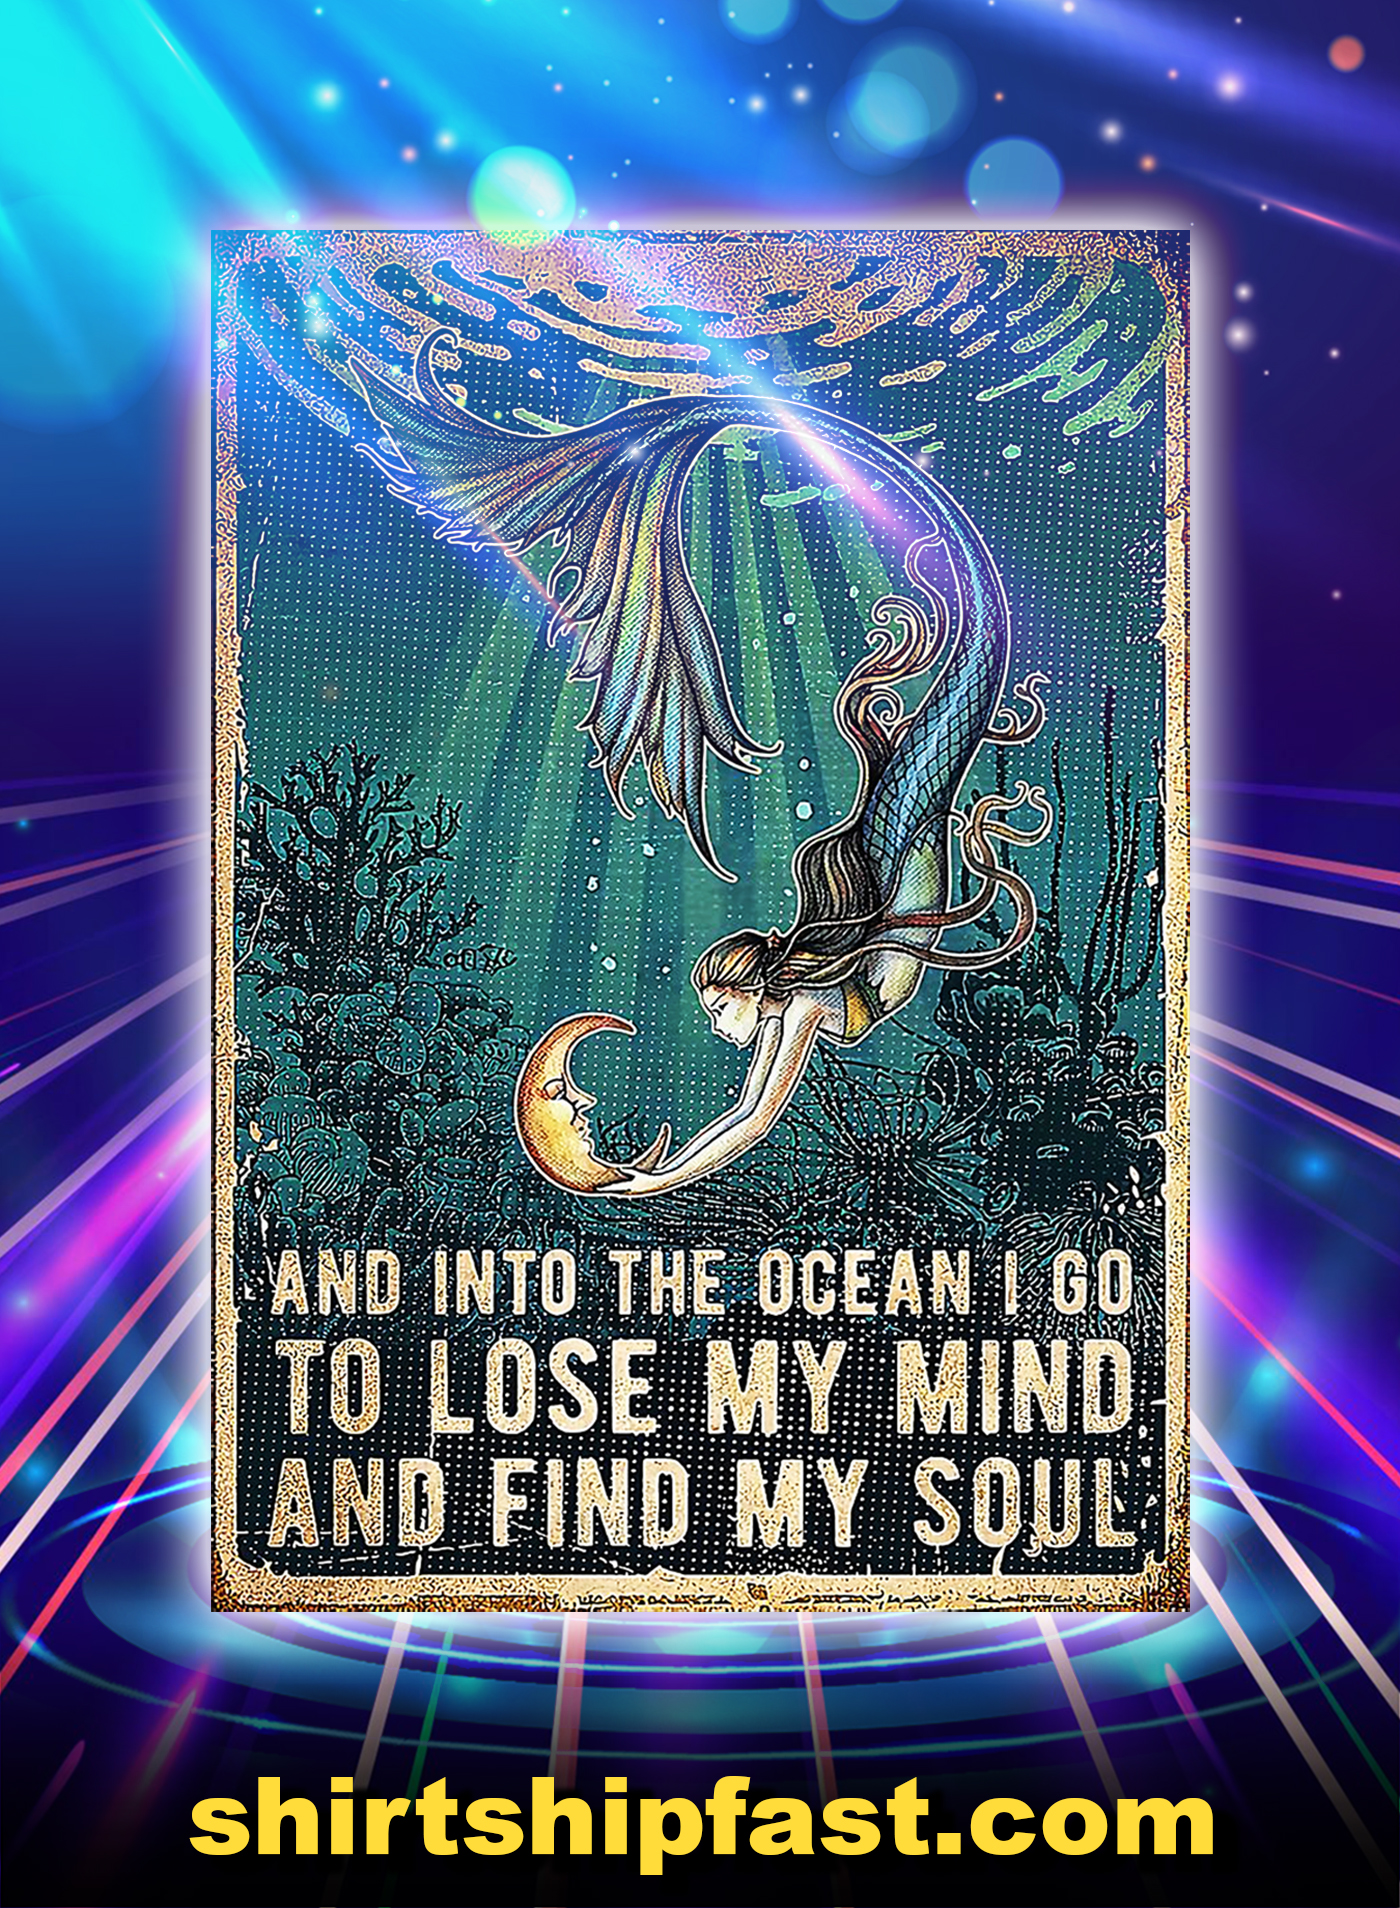 Mermaid and into the ocean i go to lose my mind and find my soul poster - A1